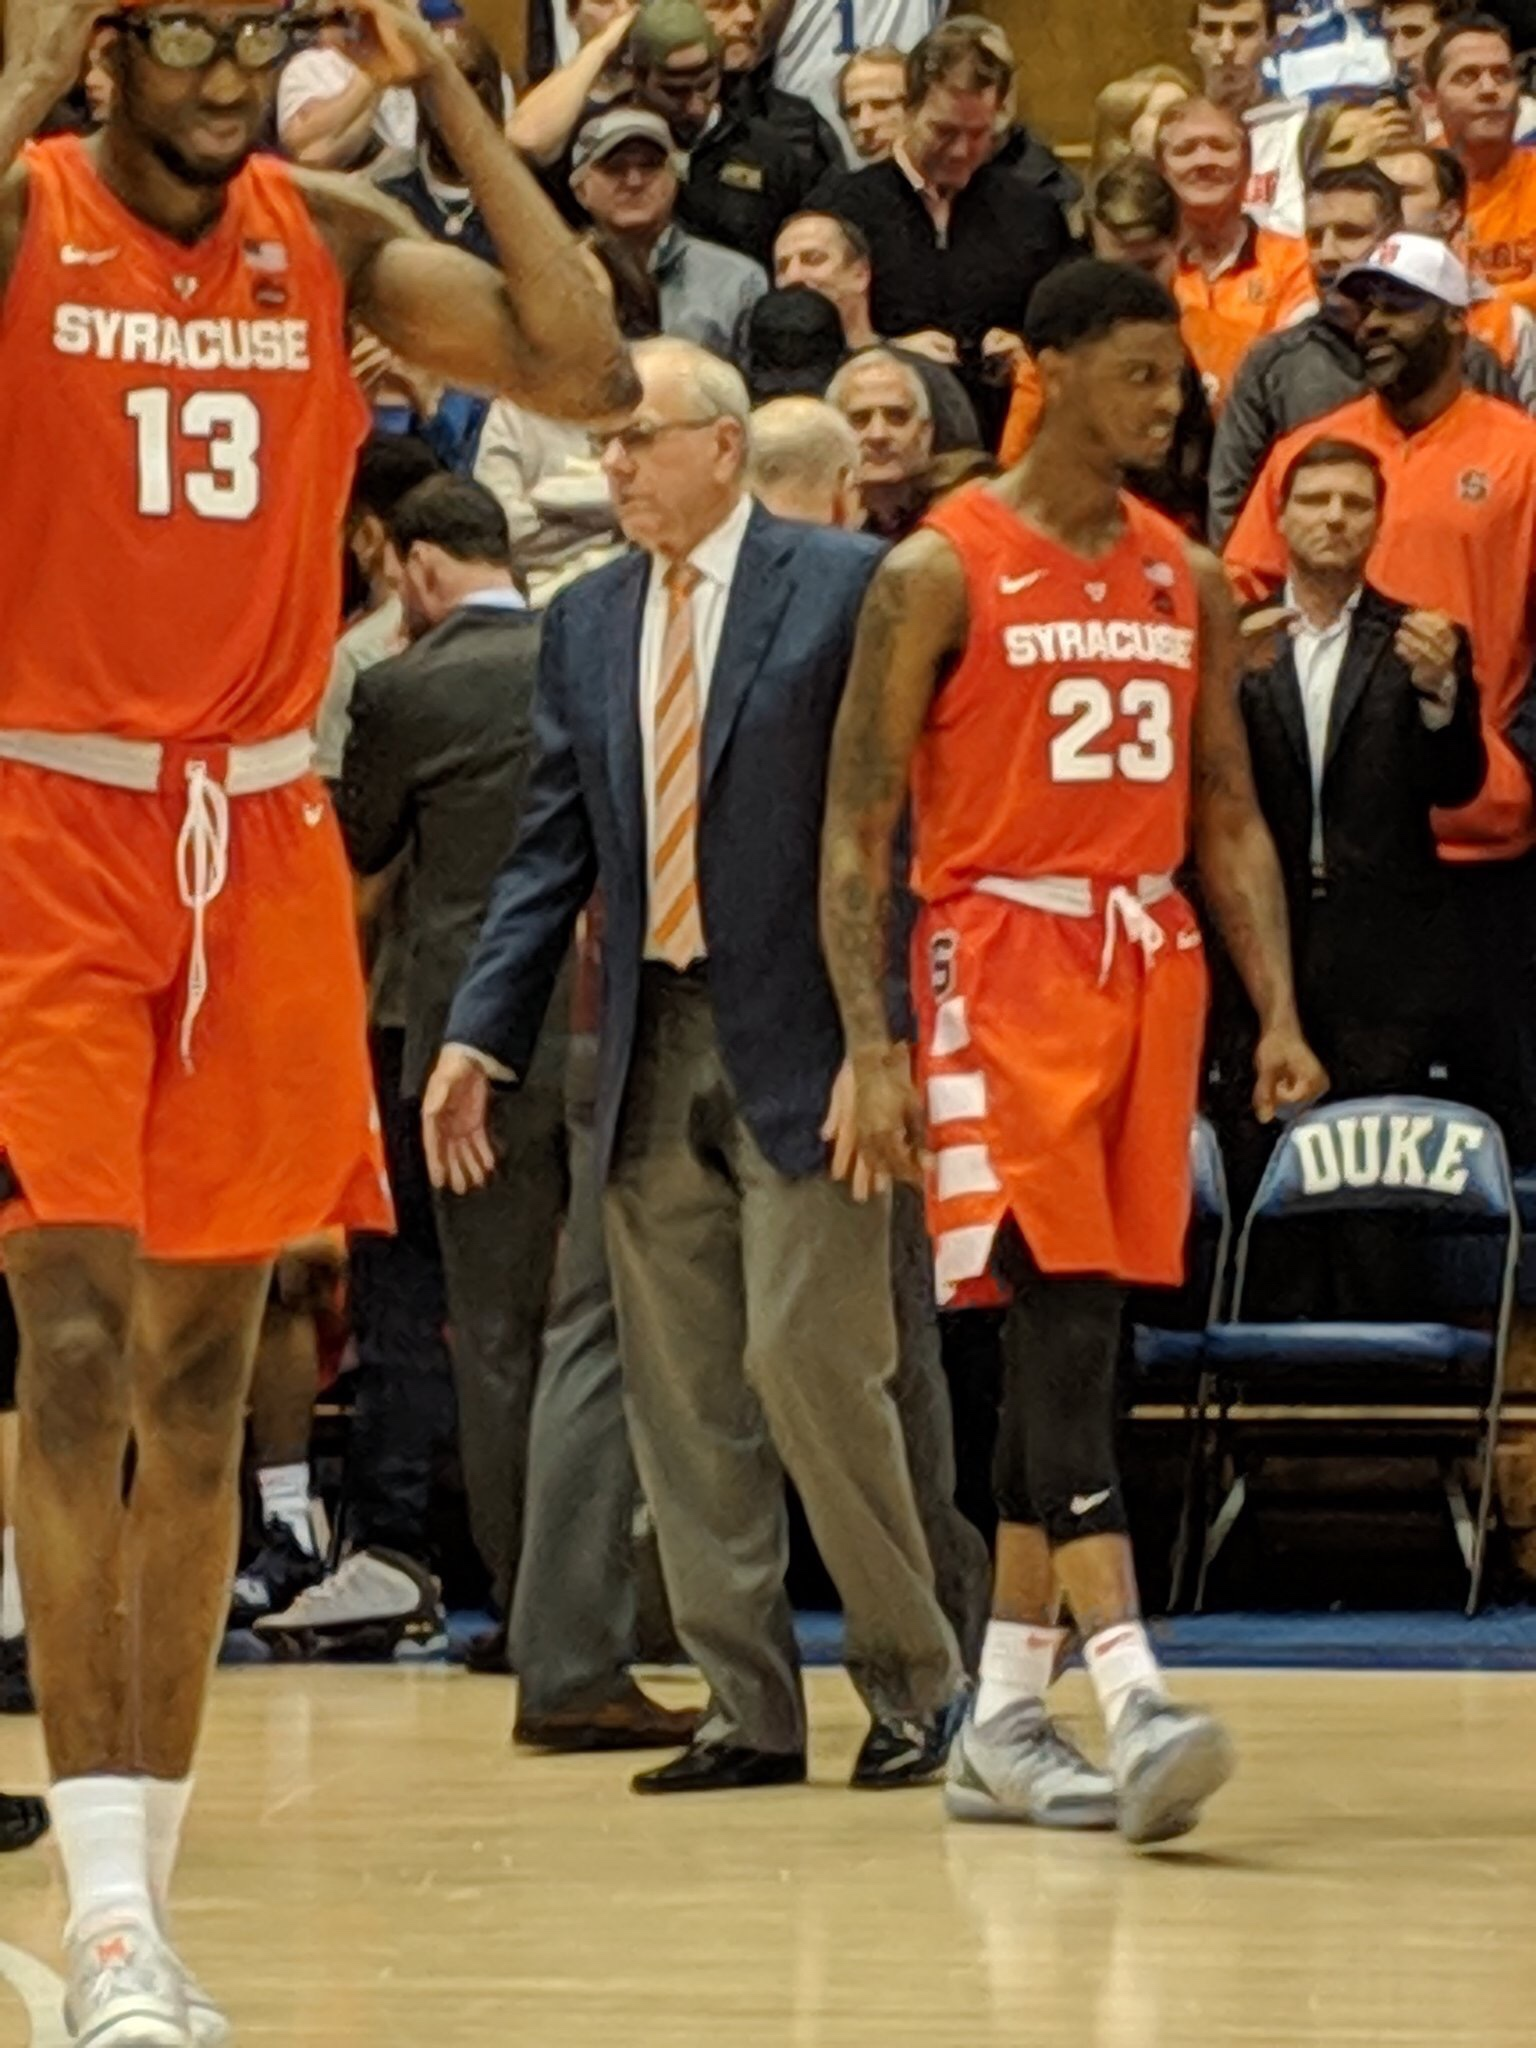 Syracuse Gets A Huge Upset Win. Out Done Only By Jim Boeheim Peeing His Pants